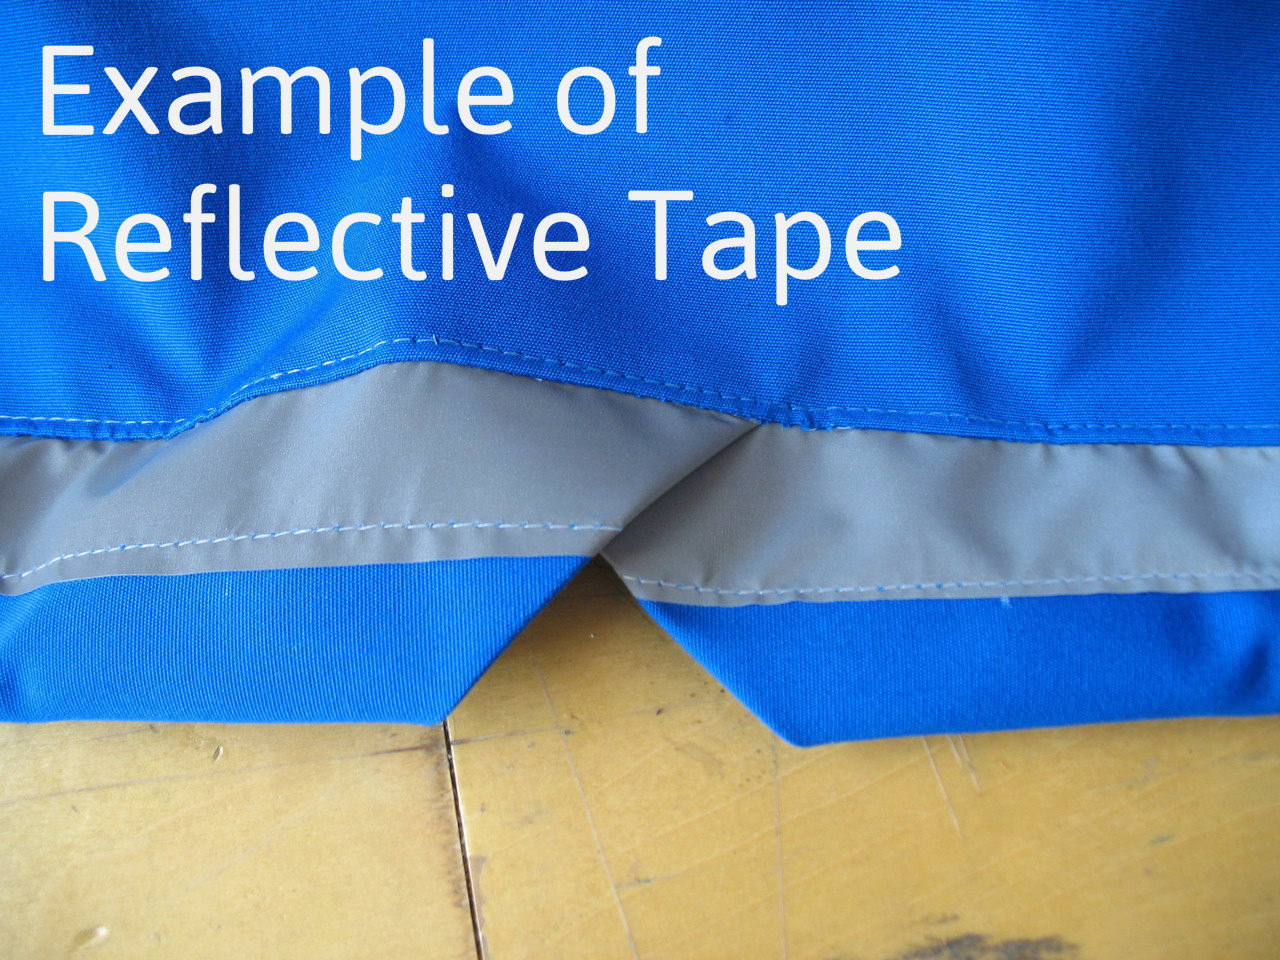 Optional Upgrade: Reflective Tape - increase visibility while parked on the street or boatyard.